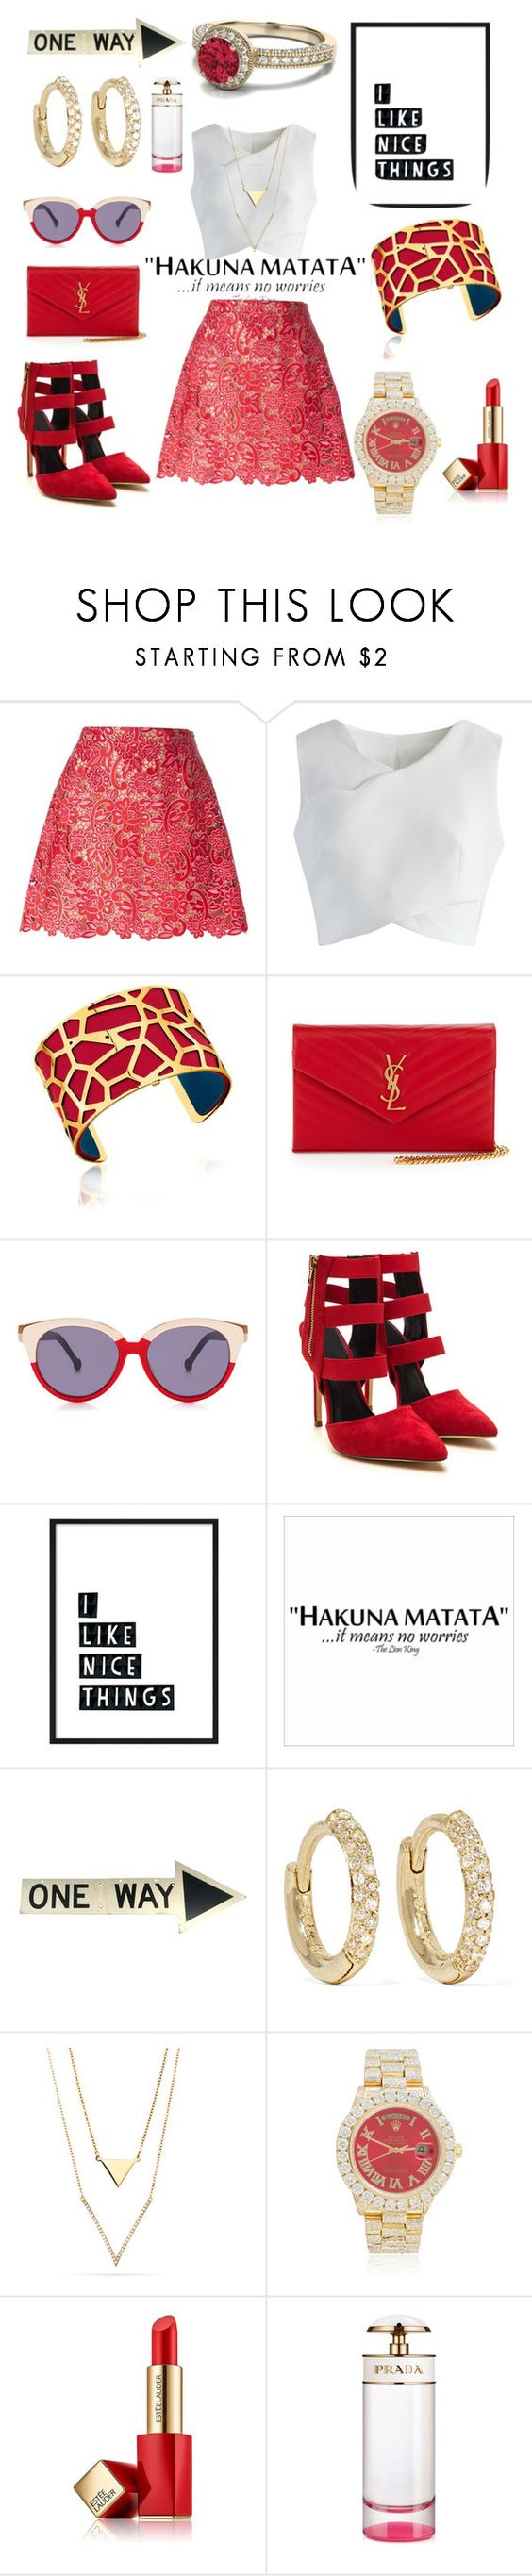 """Goldy Locks"" by michaelmartin714 ❤ liked on Polyvore featuring Marco de Vincenzo, Chicwish, Les Georgettes, Yves Saint Laurent, Preen, Jennifer Meyer Jewelry, Rolex, Estée Lauder and Prada"